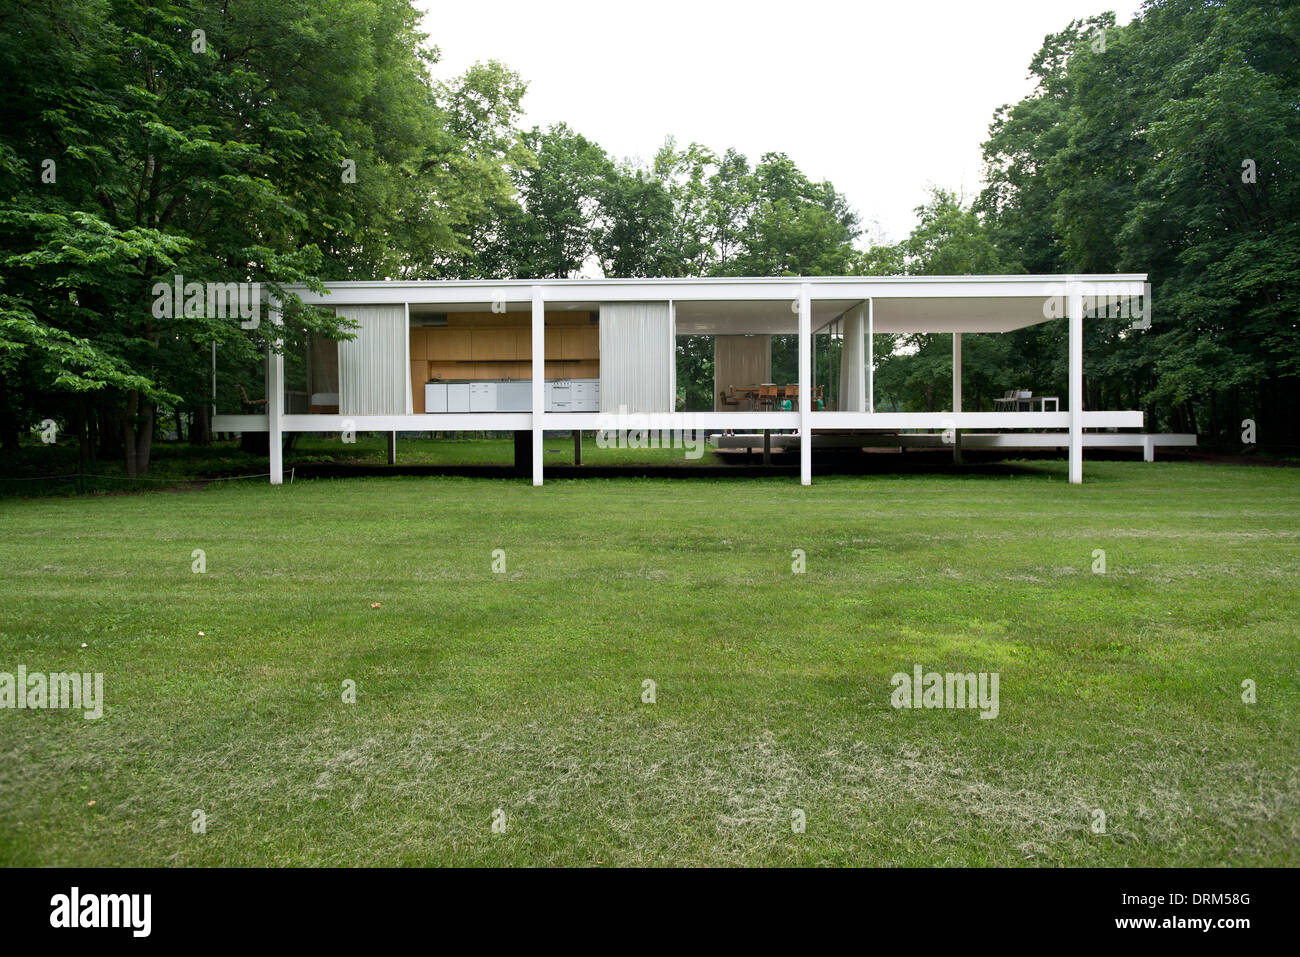 Farnsworth House, Plano, United States. Architect: Ludwig Mies Van Der  Rohe, 1951. General View Of Farnsworth House.